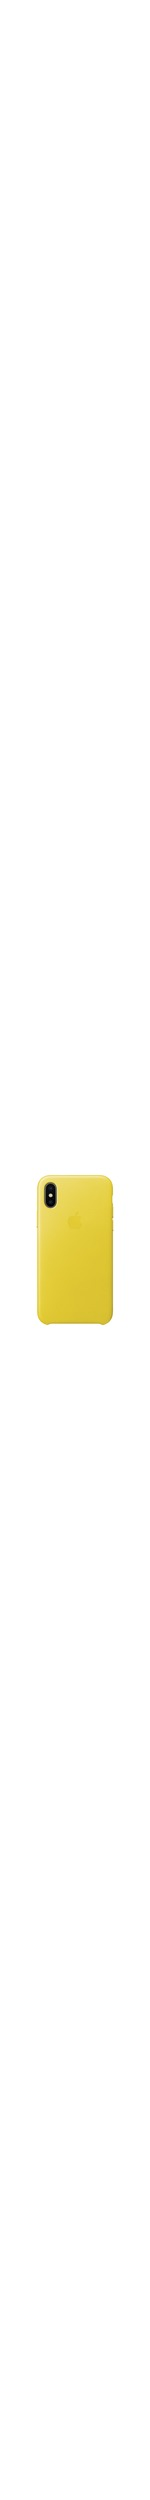 Apple Case for Apple iPhone X Smartphone - Spring Yellow